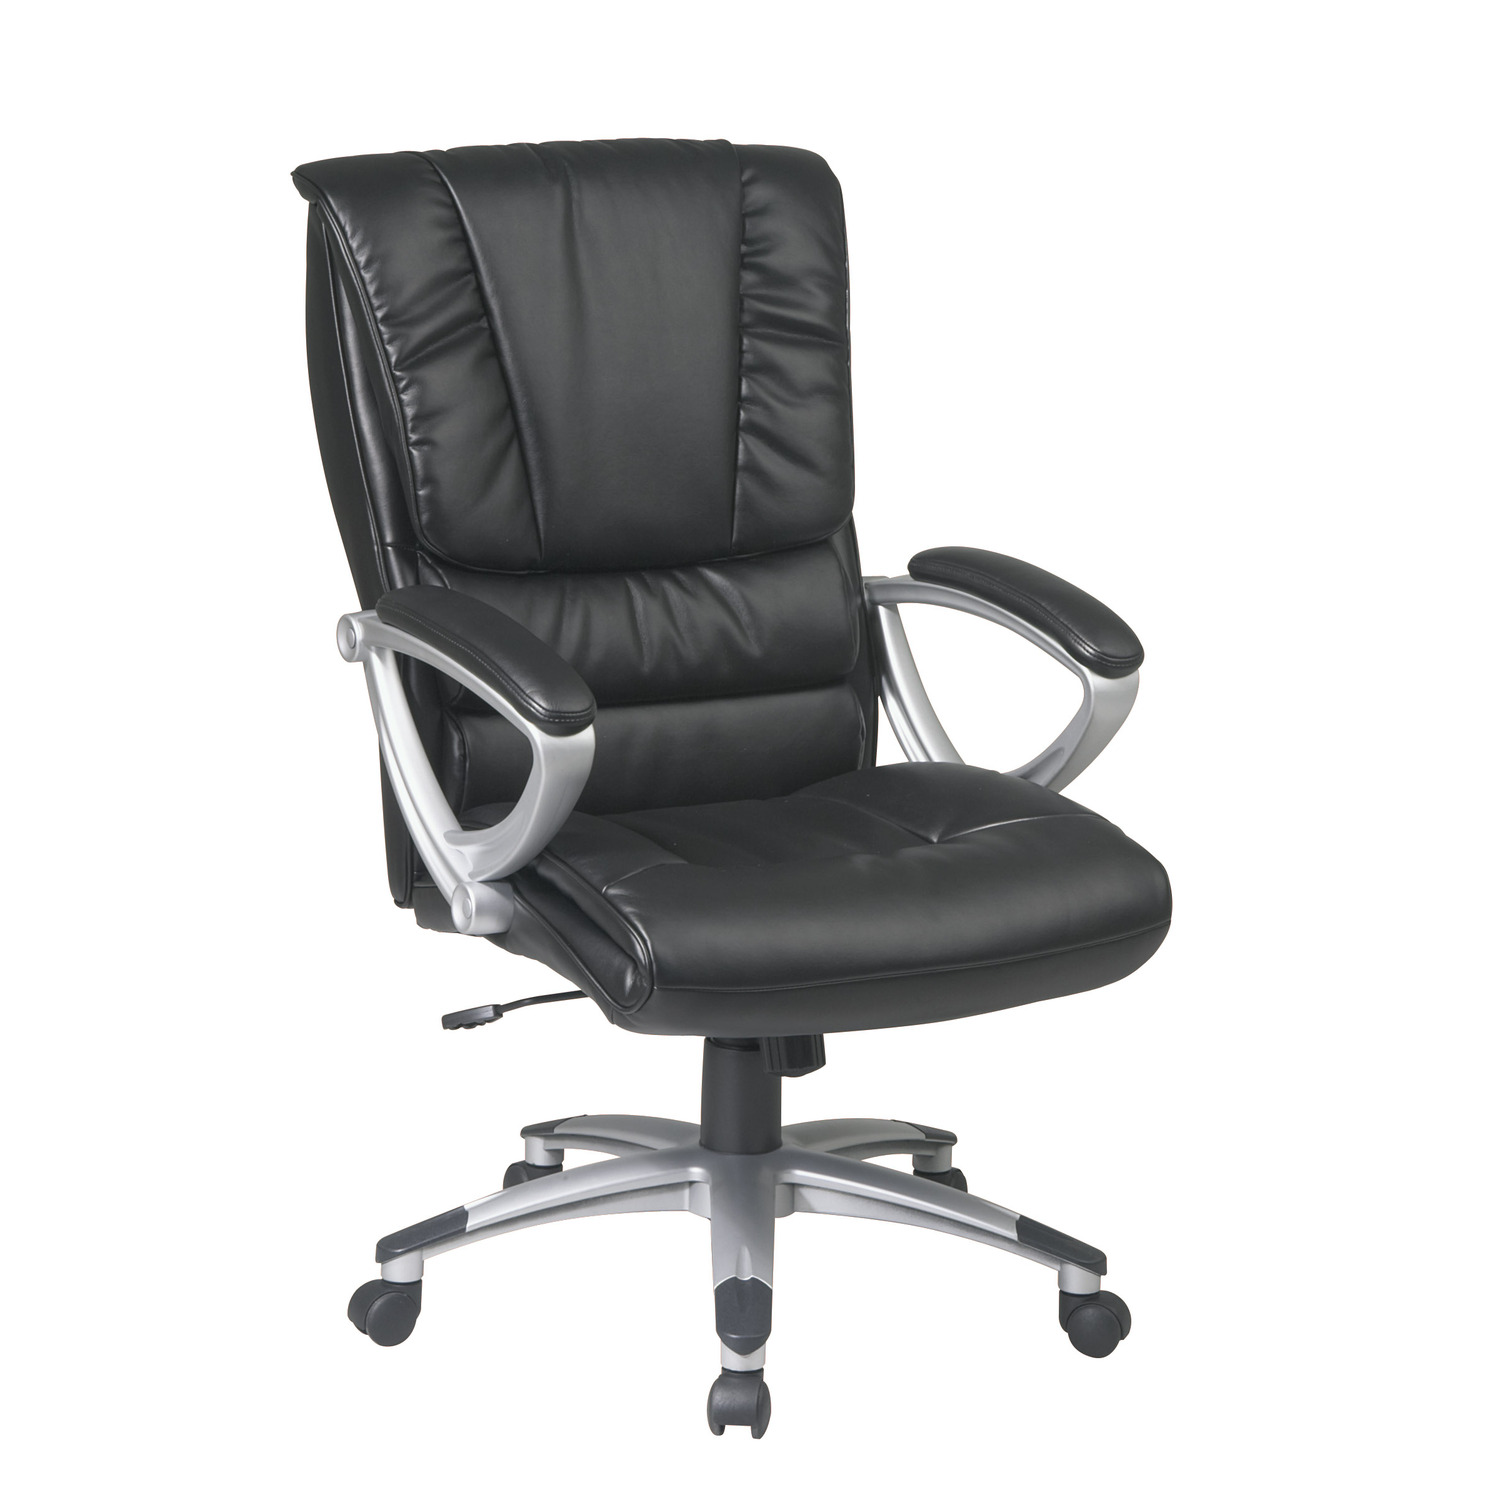 Office Star Executive Eco Leather Chair By OJ Commerce